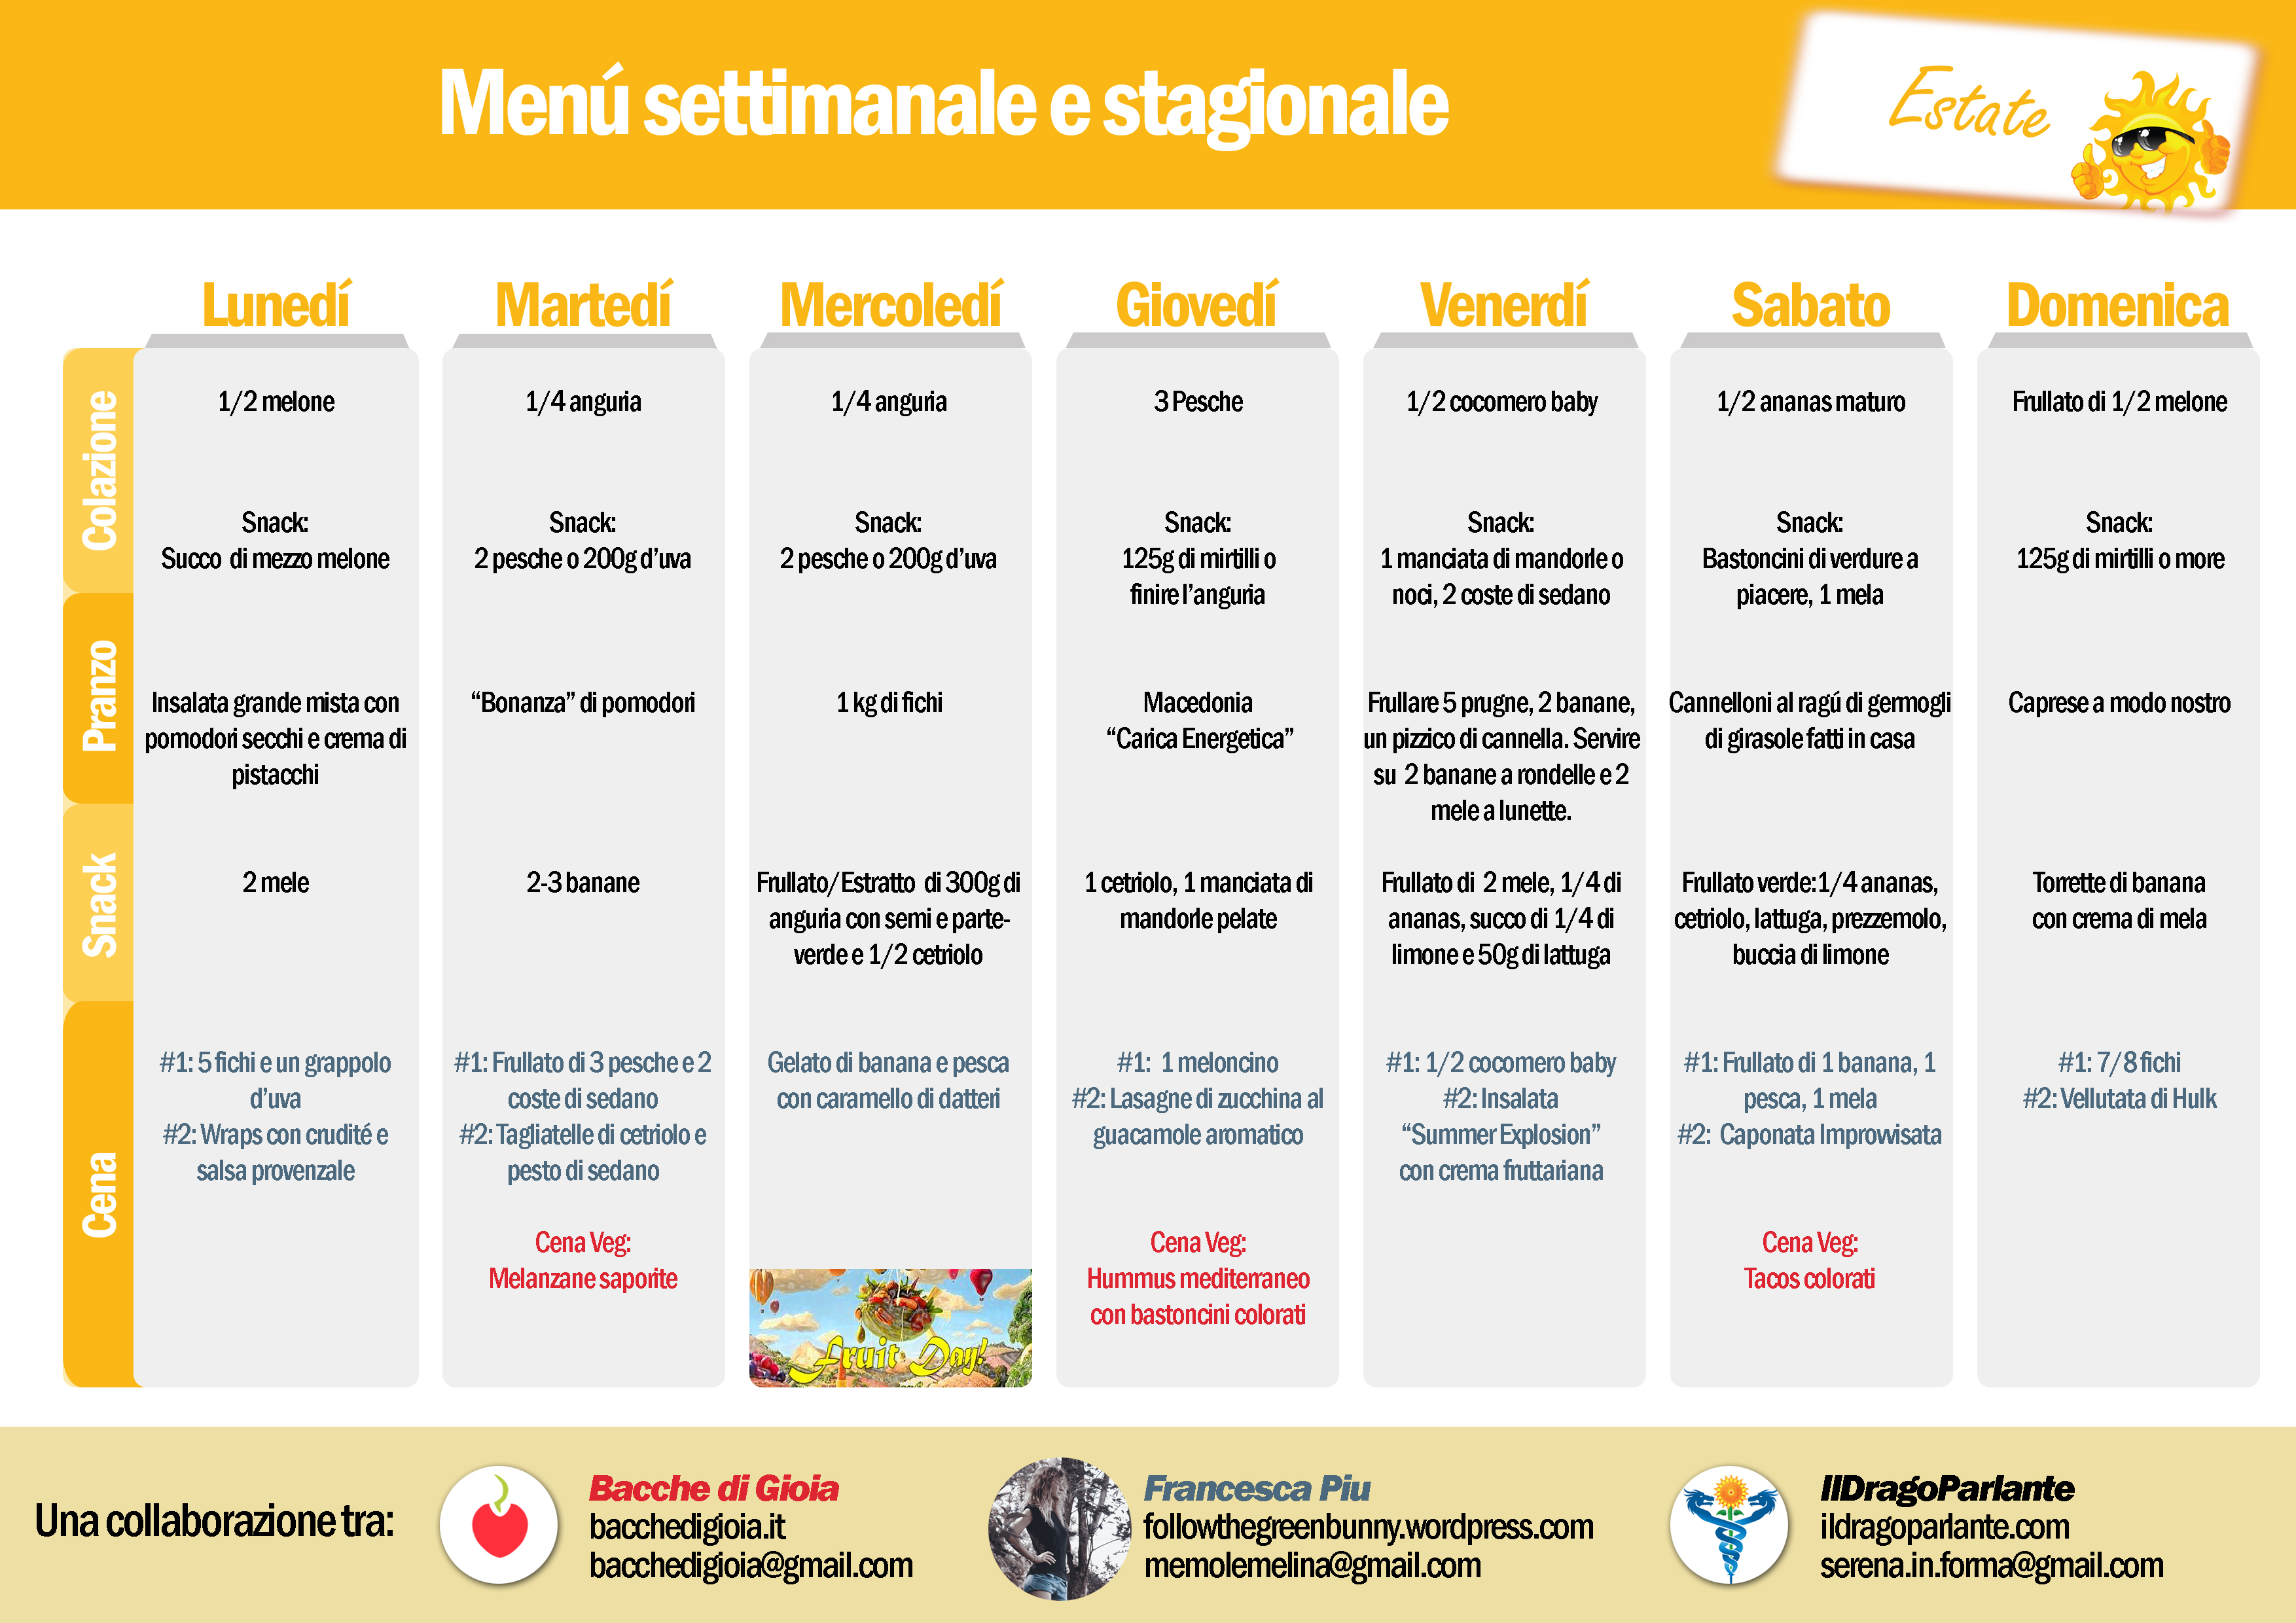 Schema alimentare vegano, crudista, igienista – Estate 			No rating results yet